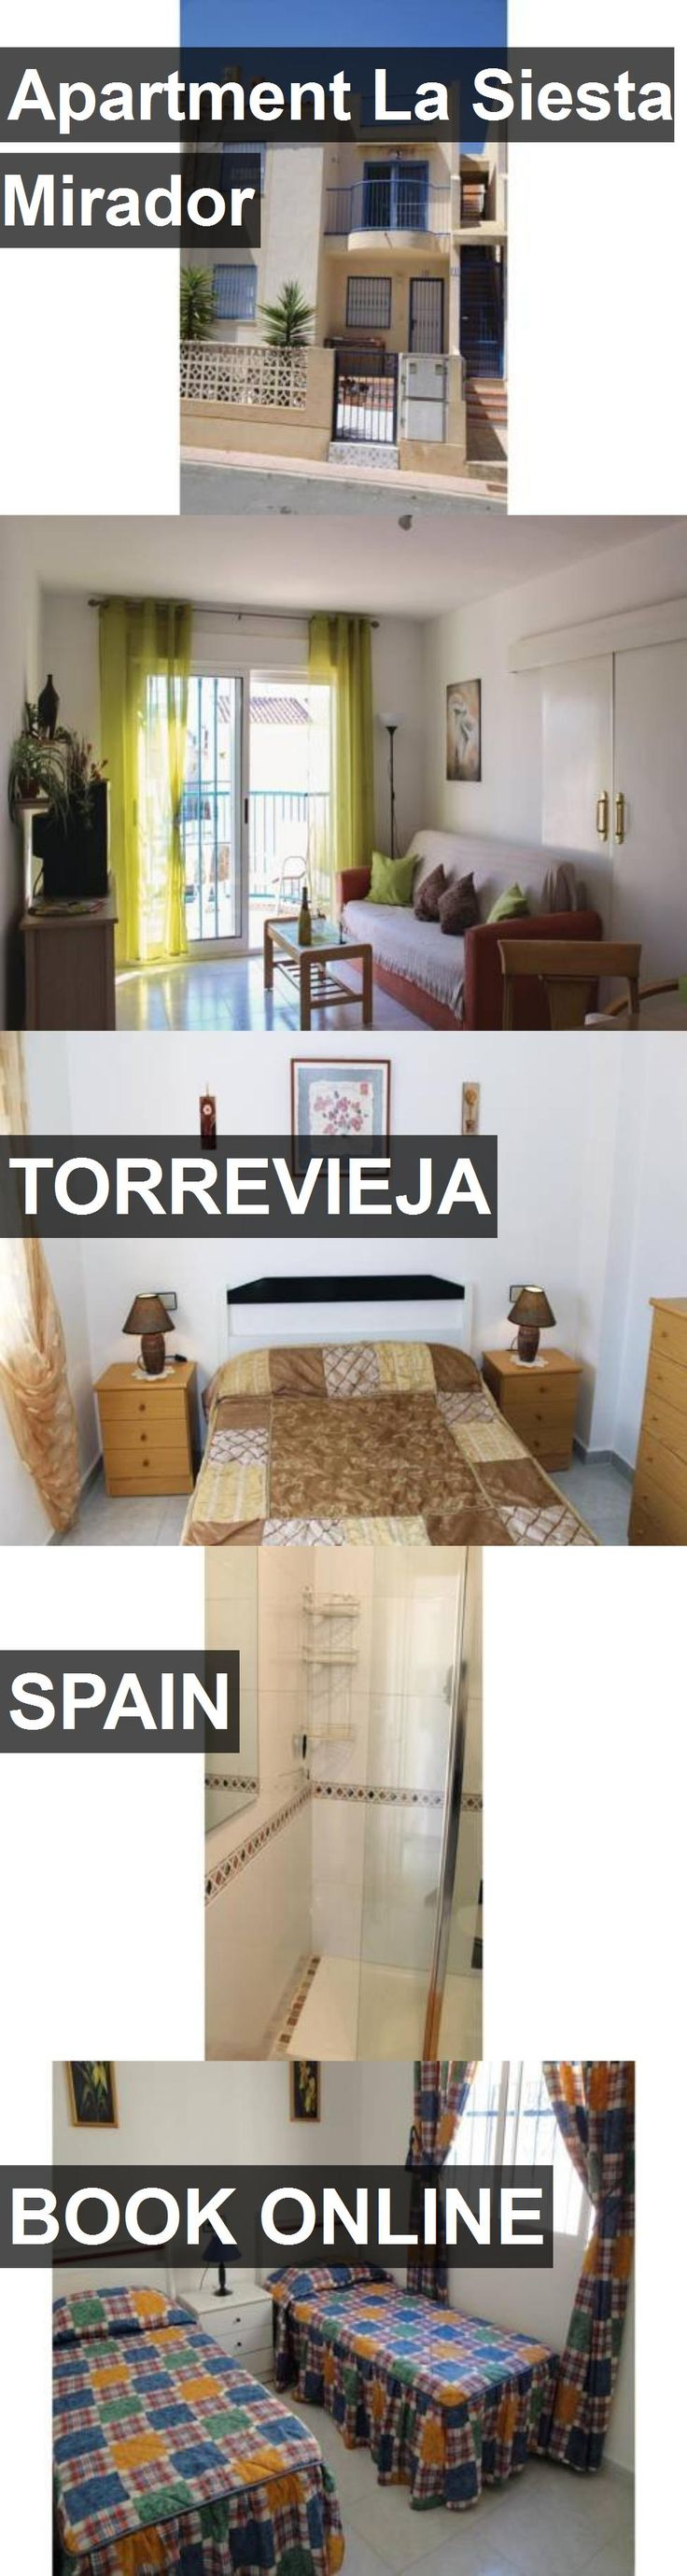 Apartment La Siesta Mirador in Torrevieja, Spain. For more information, photos, reviews and best prices please follow the link. #Spain #Torrevieja #travel #vacation #apartment